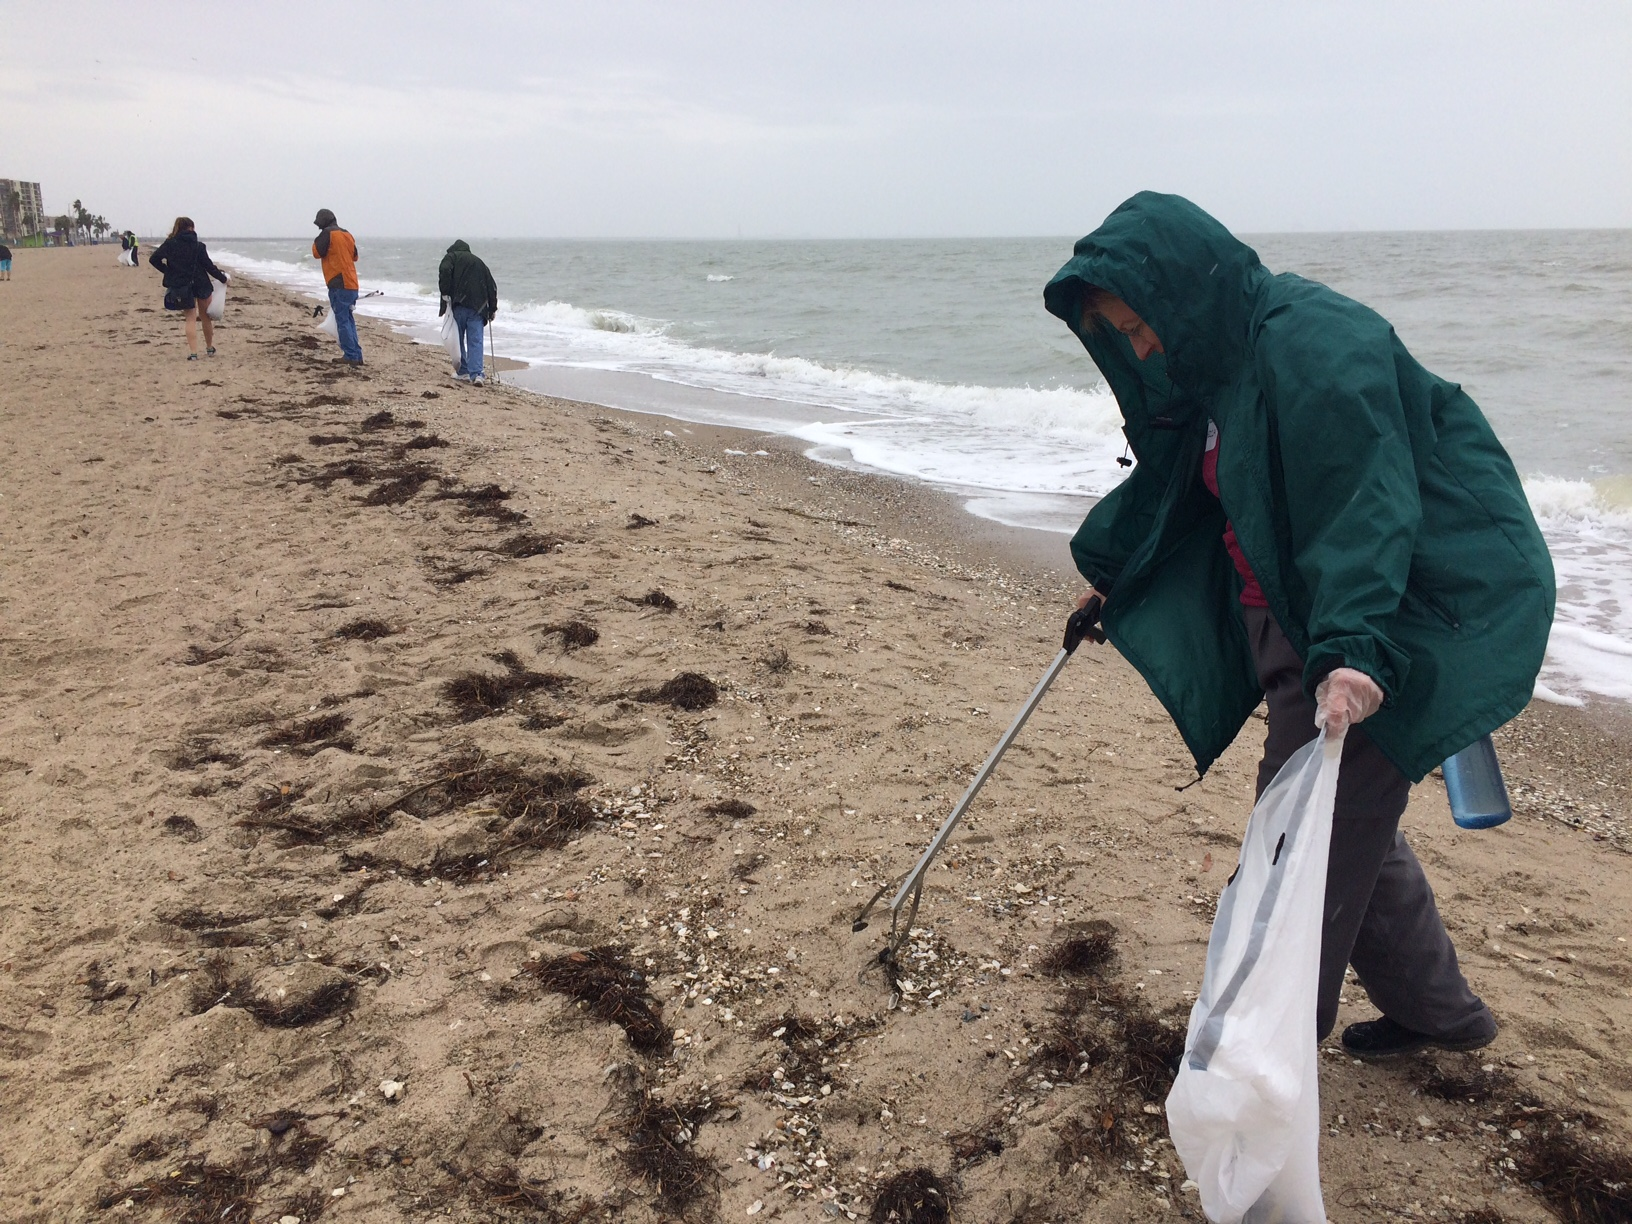 Removing litter from Corpus Christi's North Beach